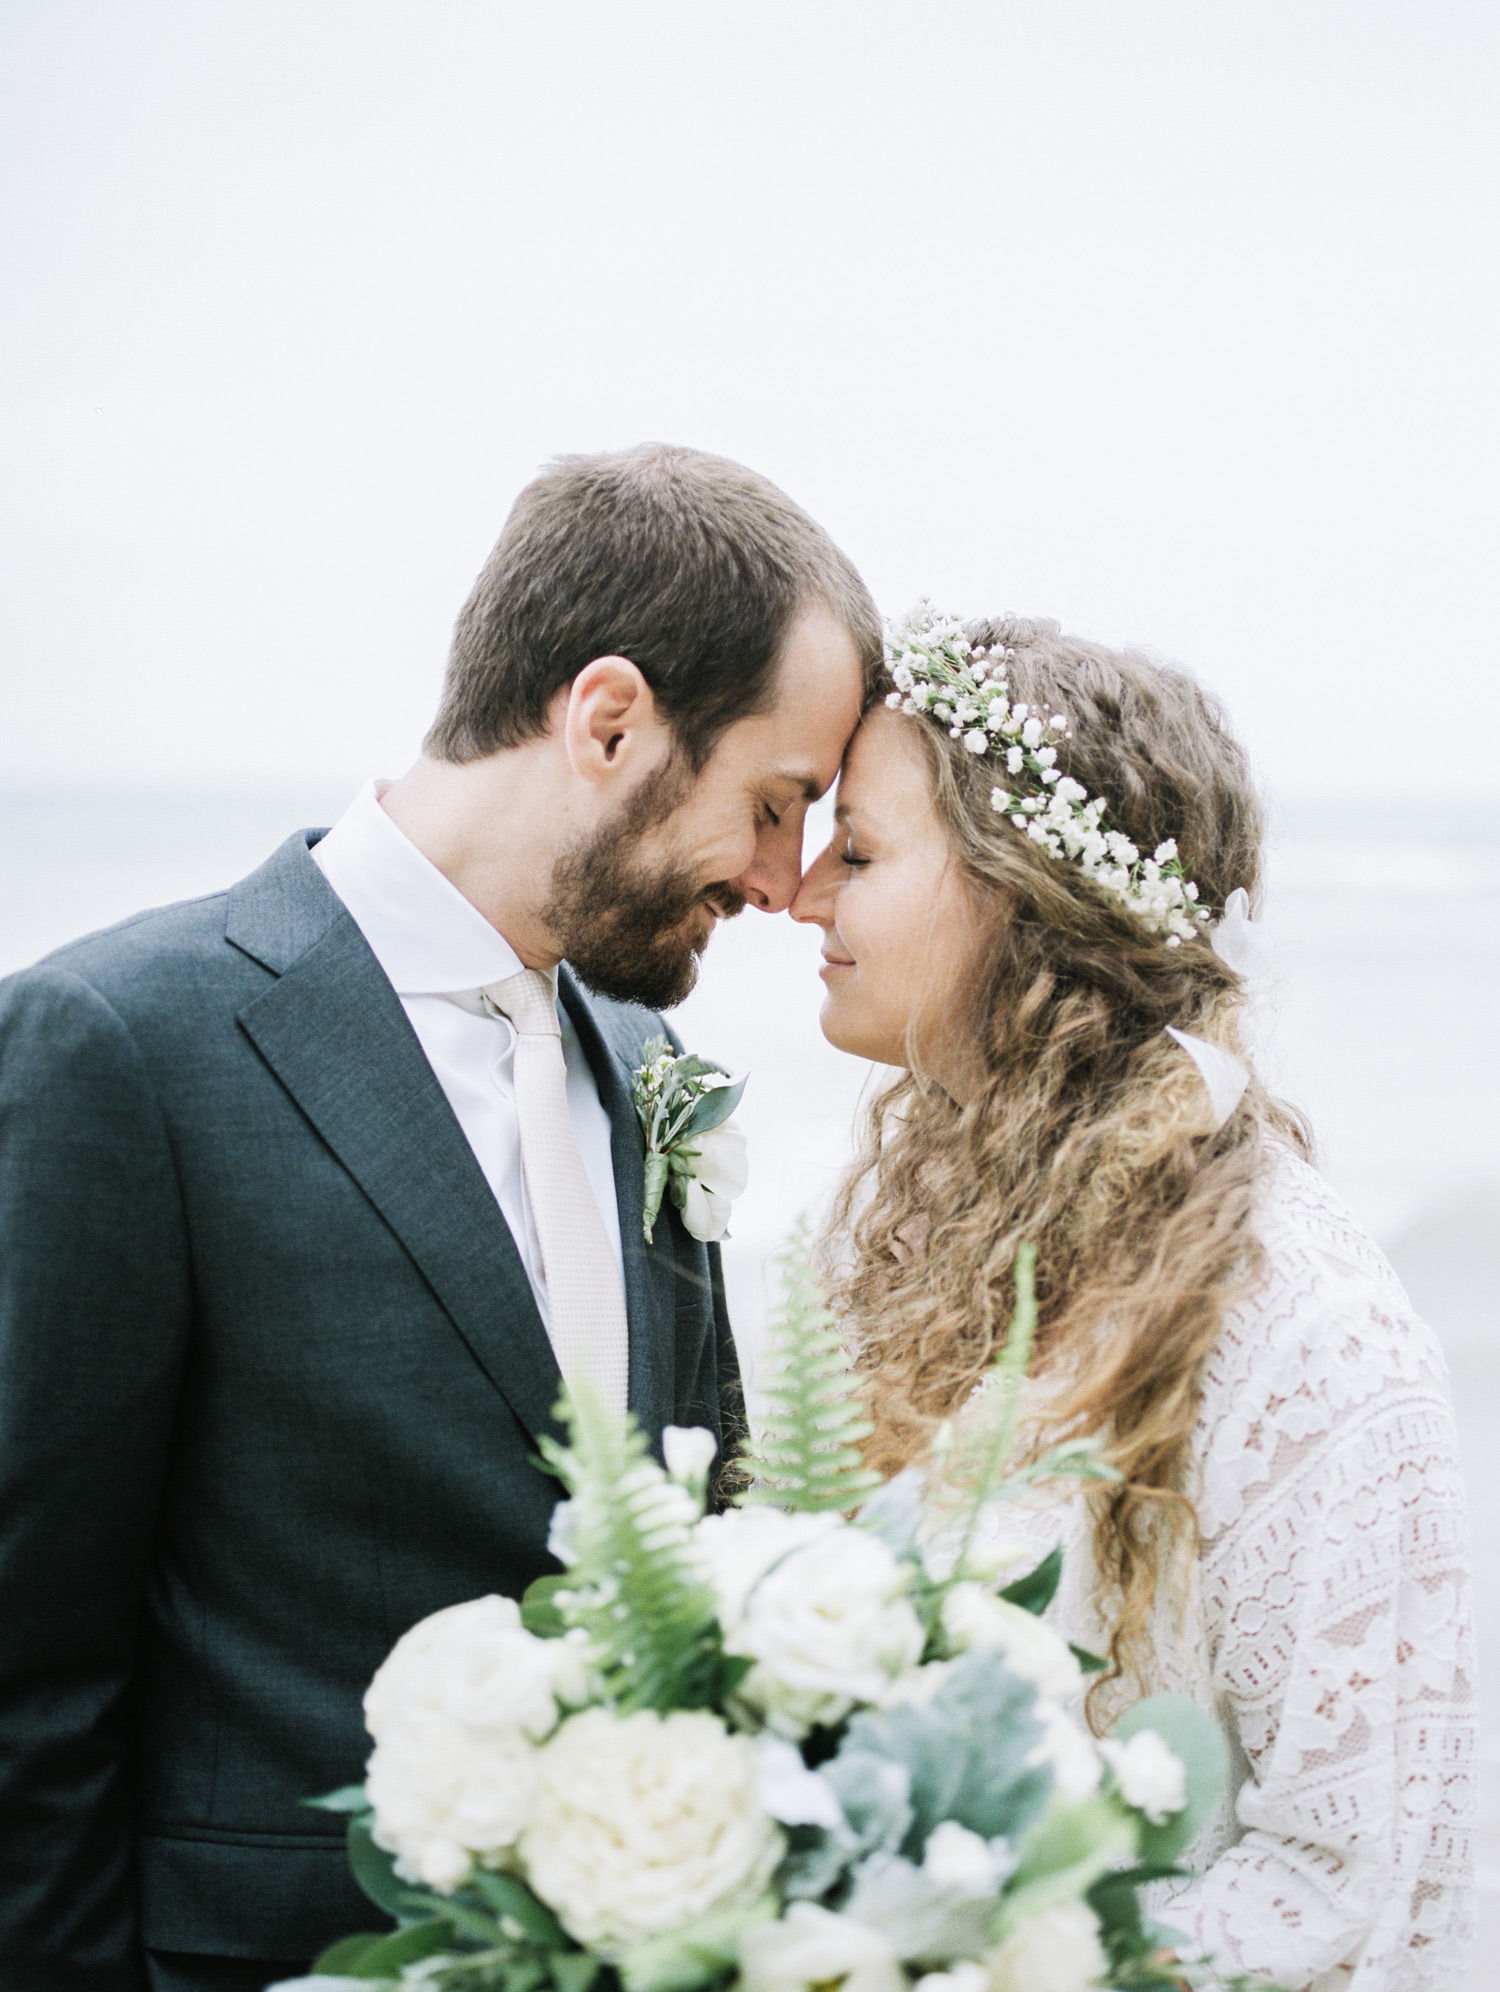 A curly haired bride and her groom share a quiet moment connecting on a Lake Michigan beach after their intimate West Michigan wedding ceremony